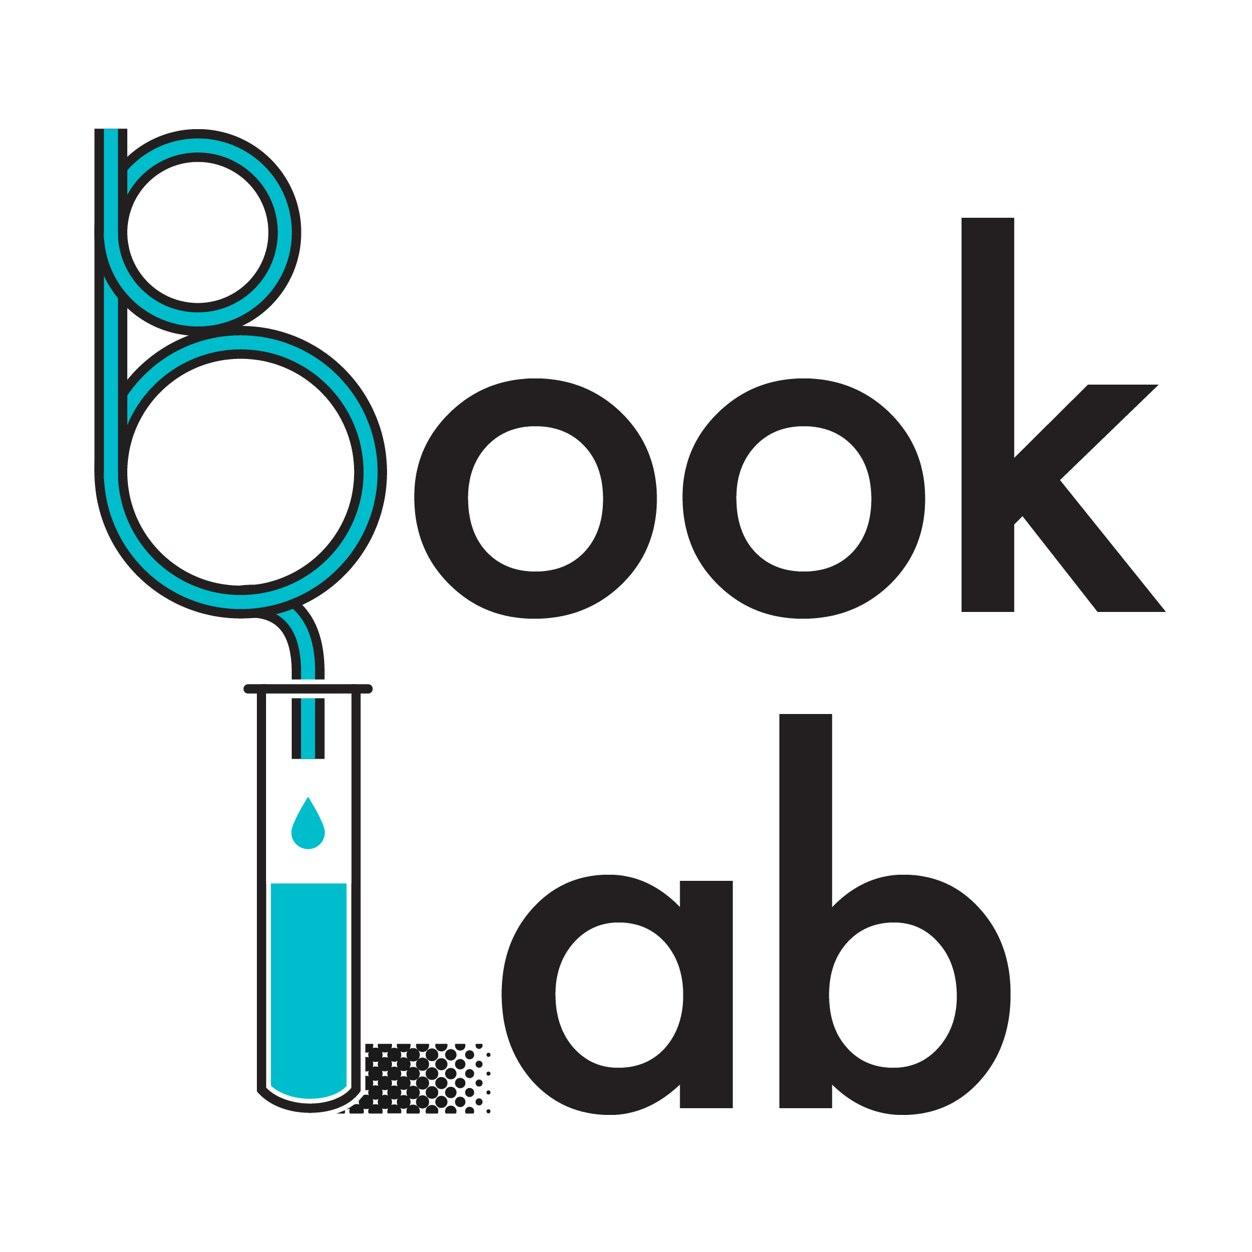 Booklab Podcast - crédit : Booklabpodcast (https://twitter.com/booklabpodcast)